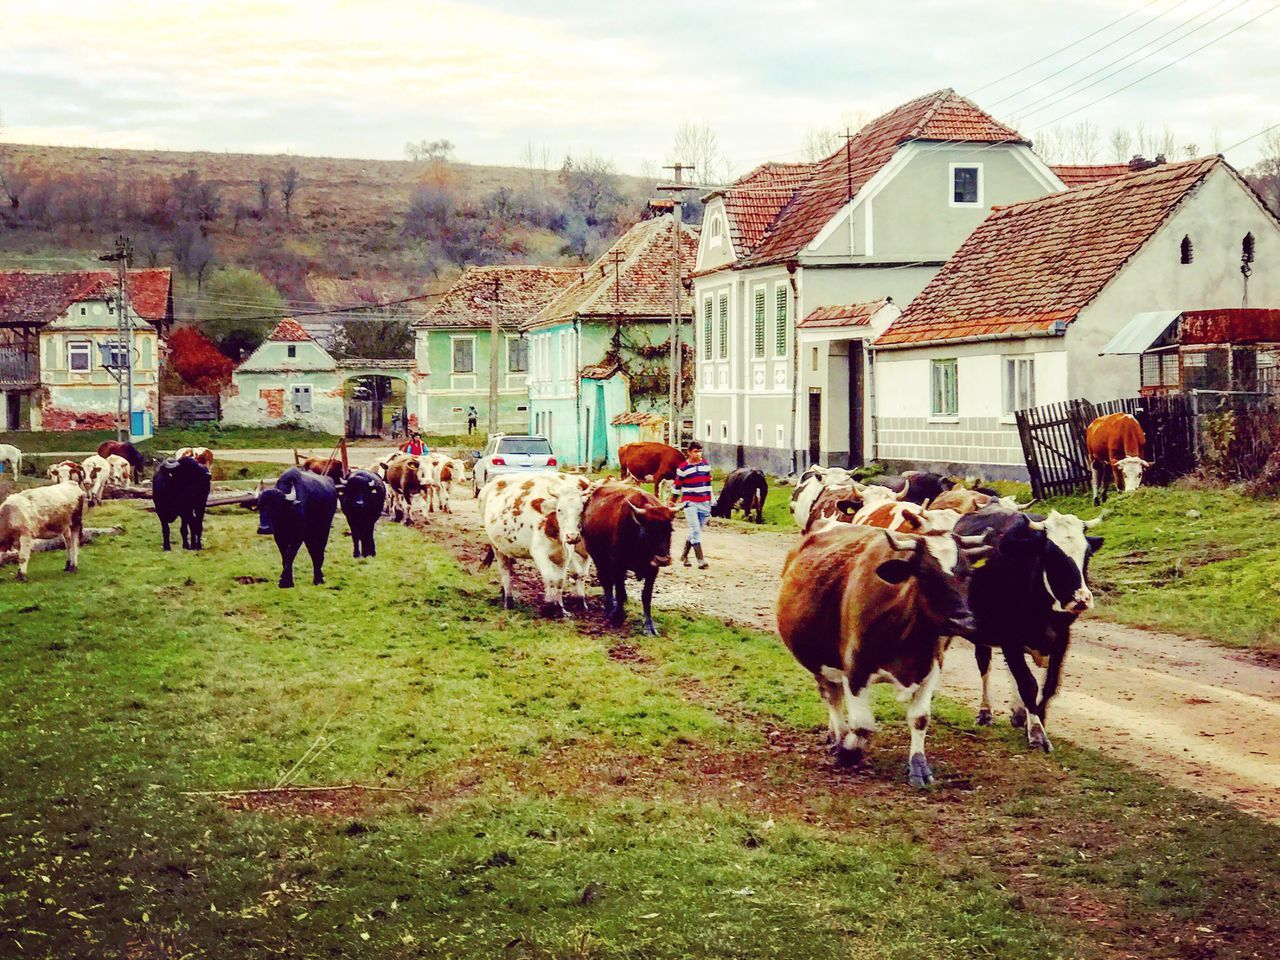 domestic animals, building exterior, architecture, built structure, cow, livestock, animal themes, mammal, house, sky, grass, day, outdoors, standing, real people, tree, nature